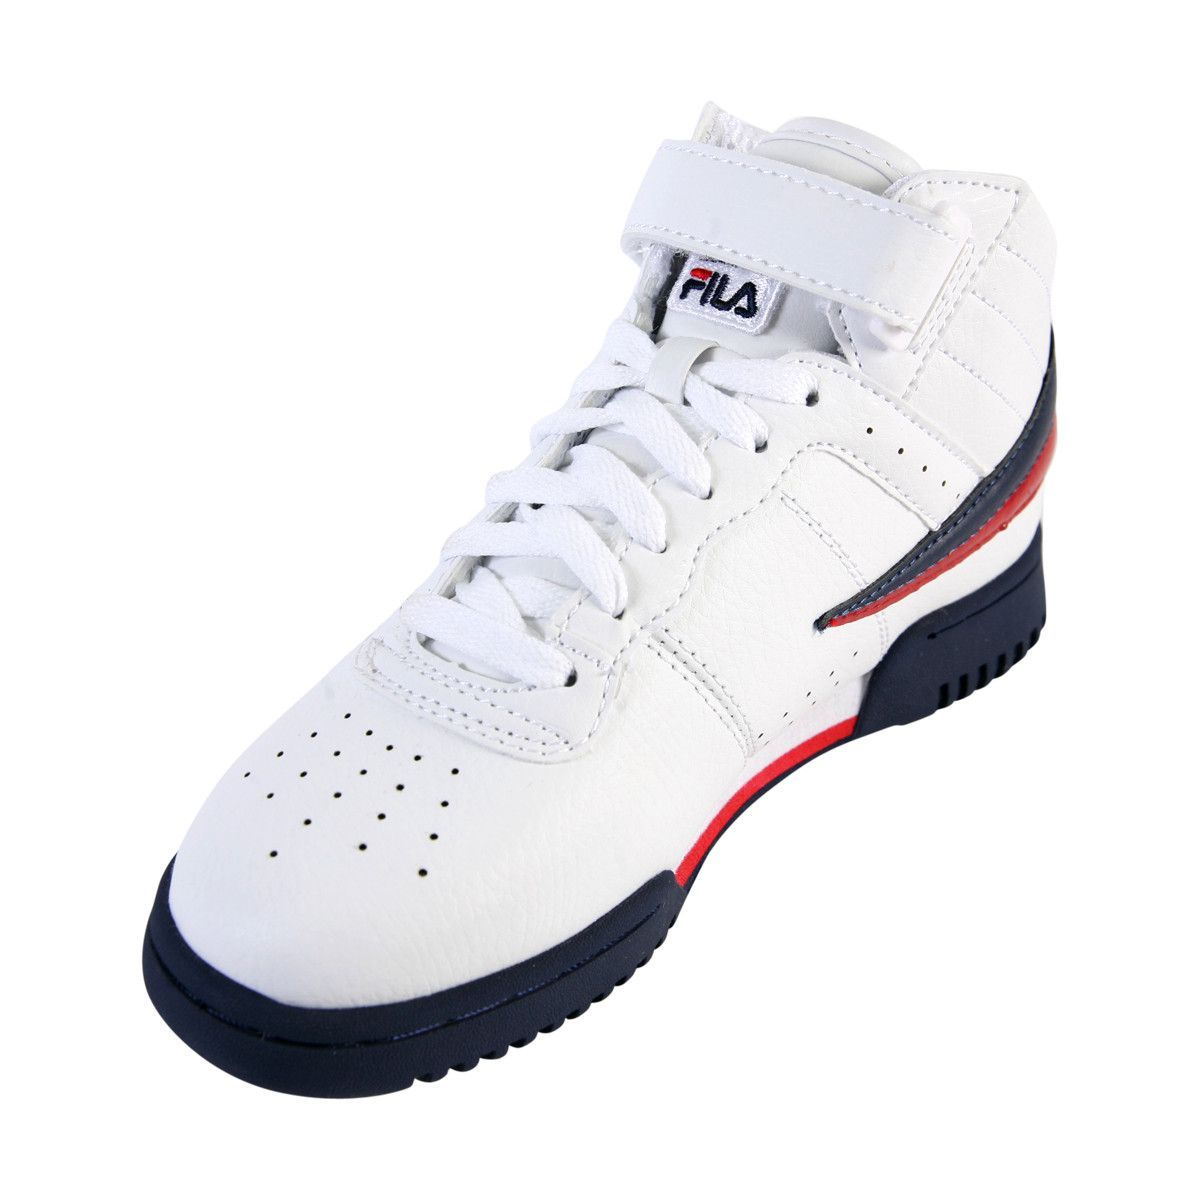 6a209afca2d4a Fila - Boy s F 13 Mid Sneakers - White Navy Red